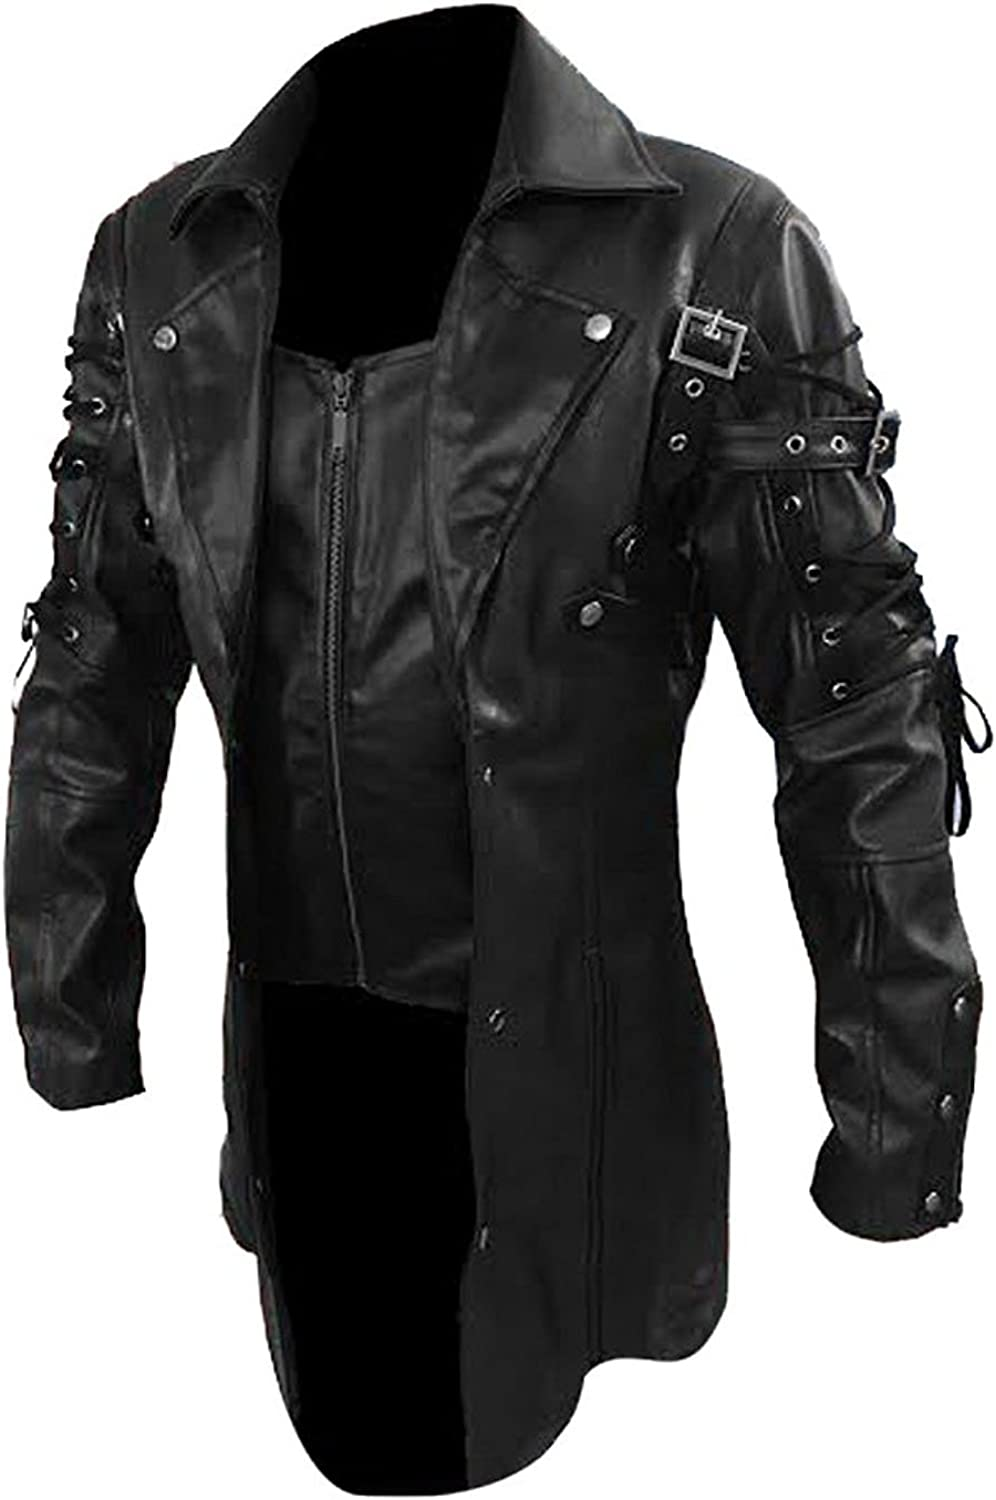 Mens Real Black Leather Goth Matrix Trench Coat Steampunk Gothic Real Leather Coat